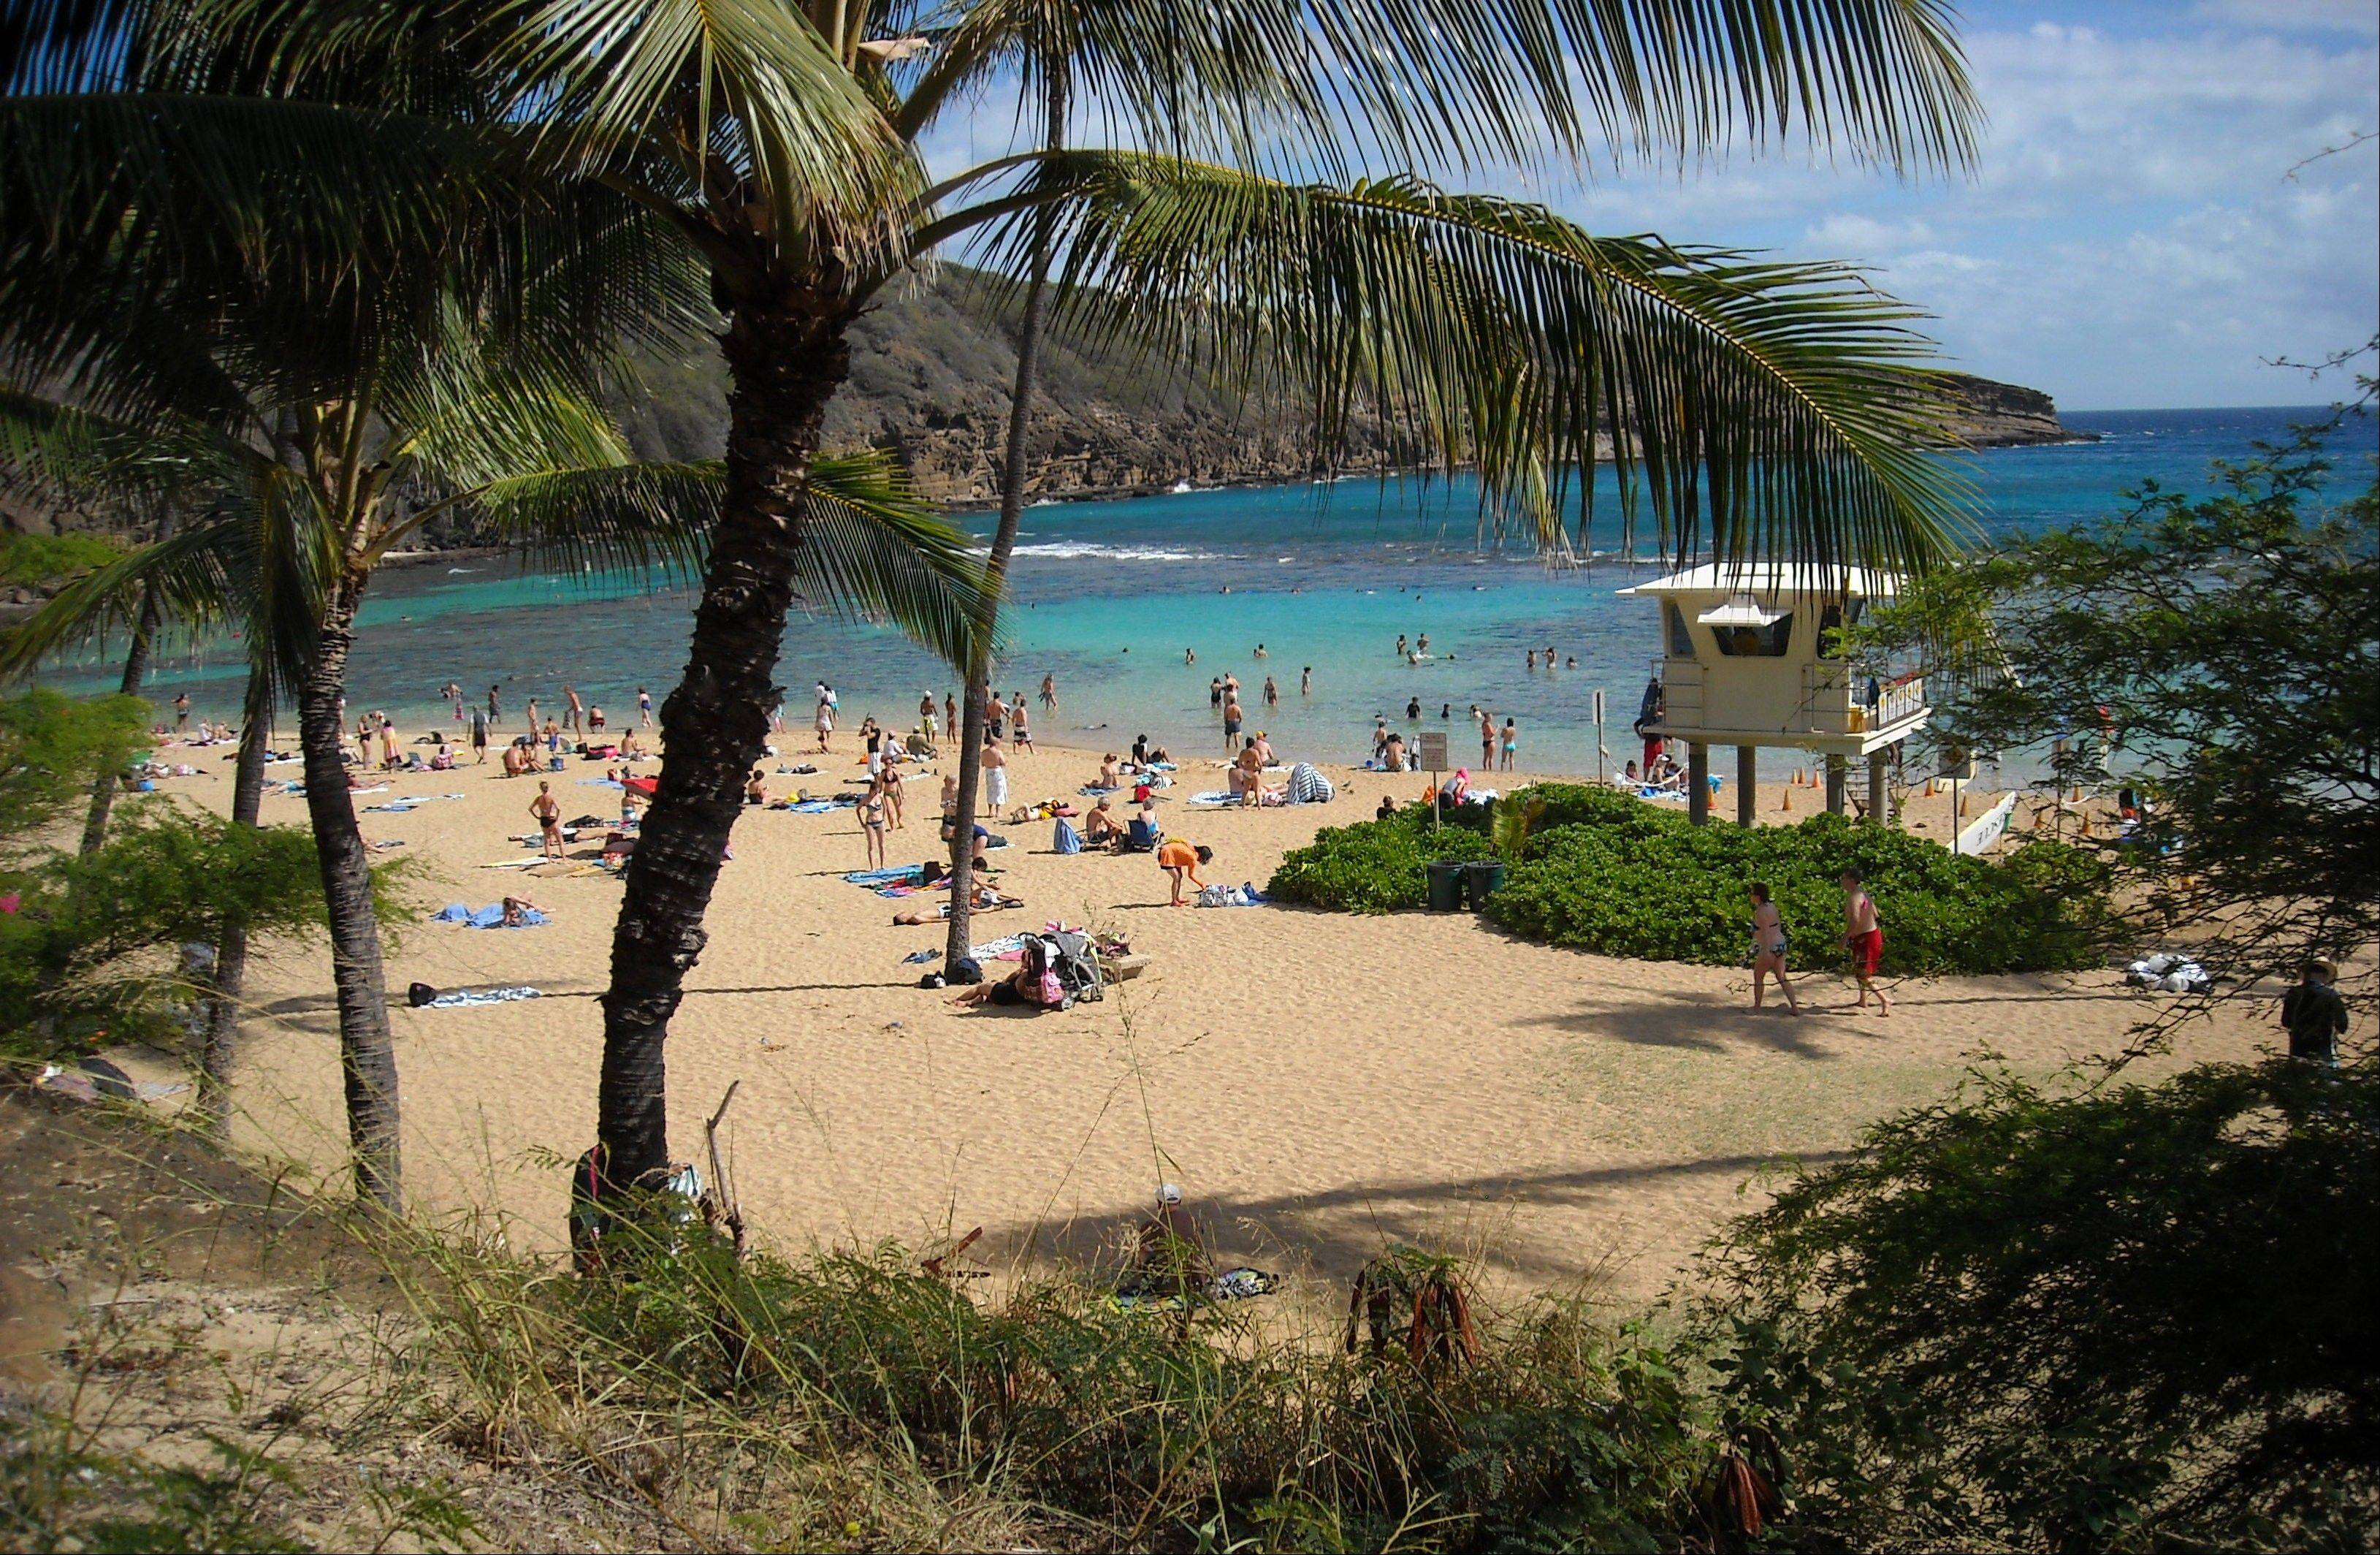 Sunbathers and snorkelers enjoy a balmy beach day at Hanauma Bay, on the east side of Oahu, Hawaii. The bay is home to hordes of colorful tropical fish.